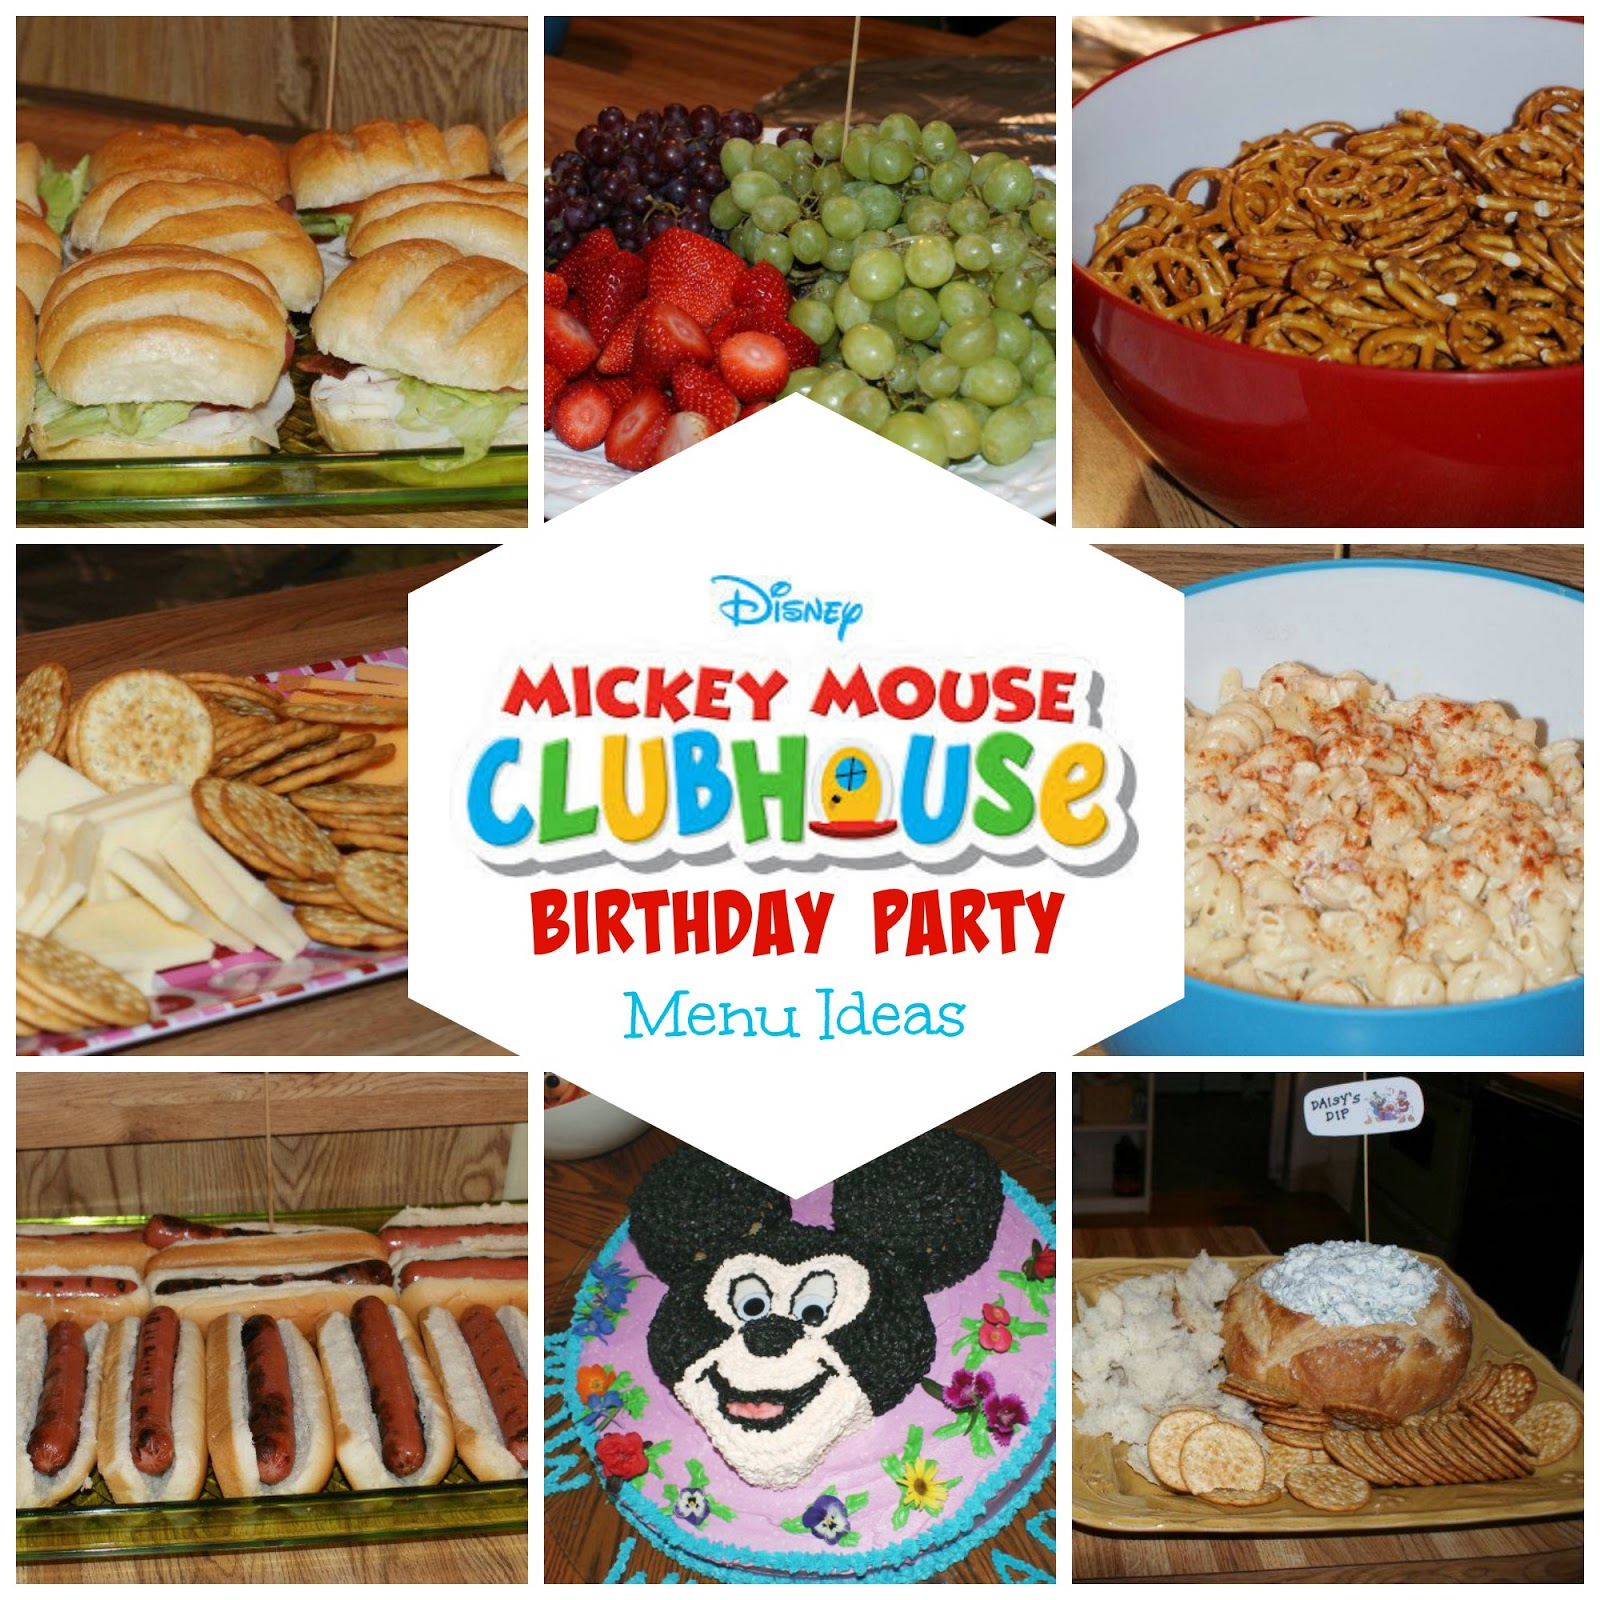 8 Mickey Mouse Birthday Party Menu Ideas | thetwobiteclub.com